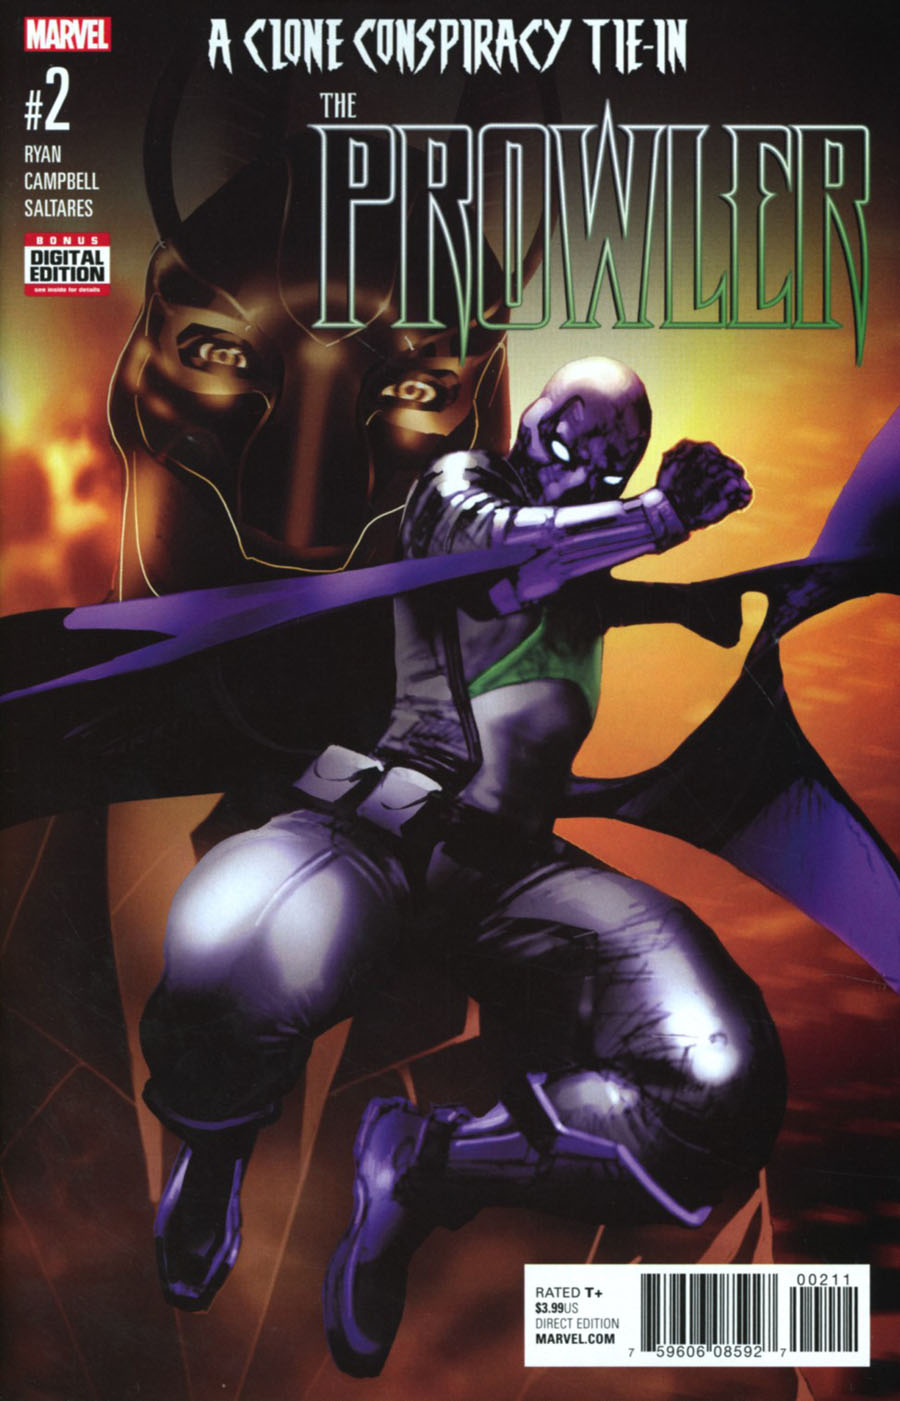 Prowler (Marvel) Vol 2 #2 Cover A Regular Travel Foreman Cover (Clone Conspiracy Tie-In)